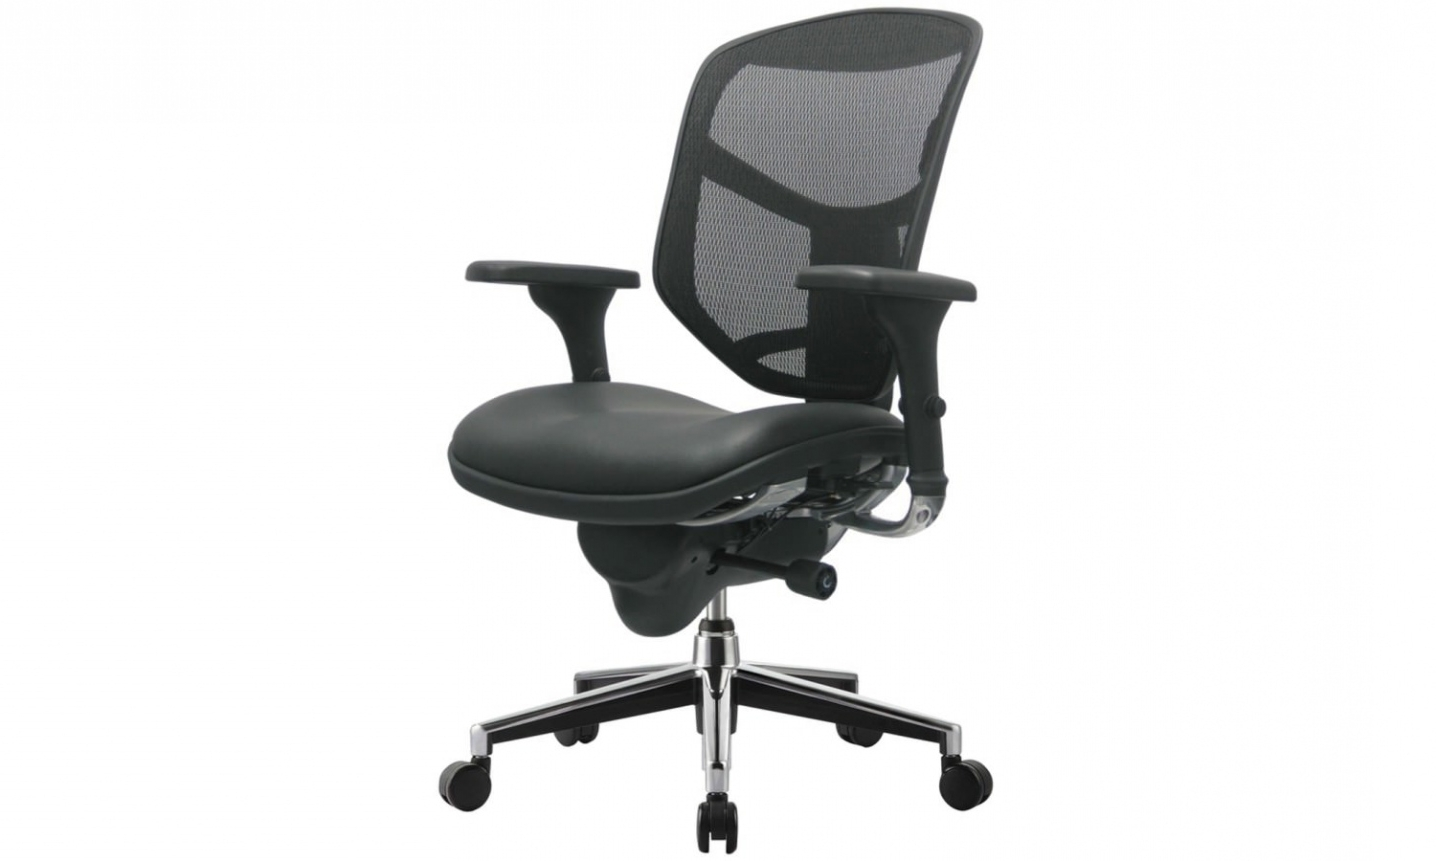 Executive Office Chairs With Adjustable Lumbar Support In Most Up To Date Office Chair With Adjustable Lumbar Support – Best Ergonomic Desk (View 3 of 20)